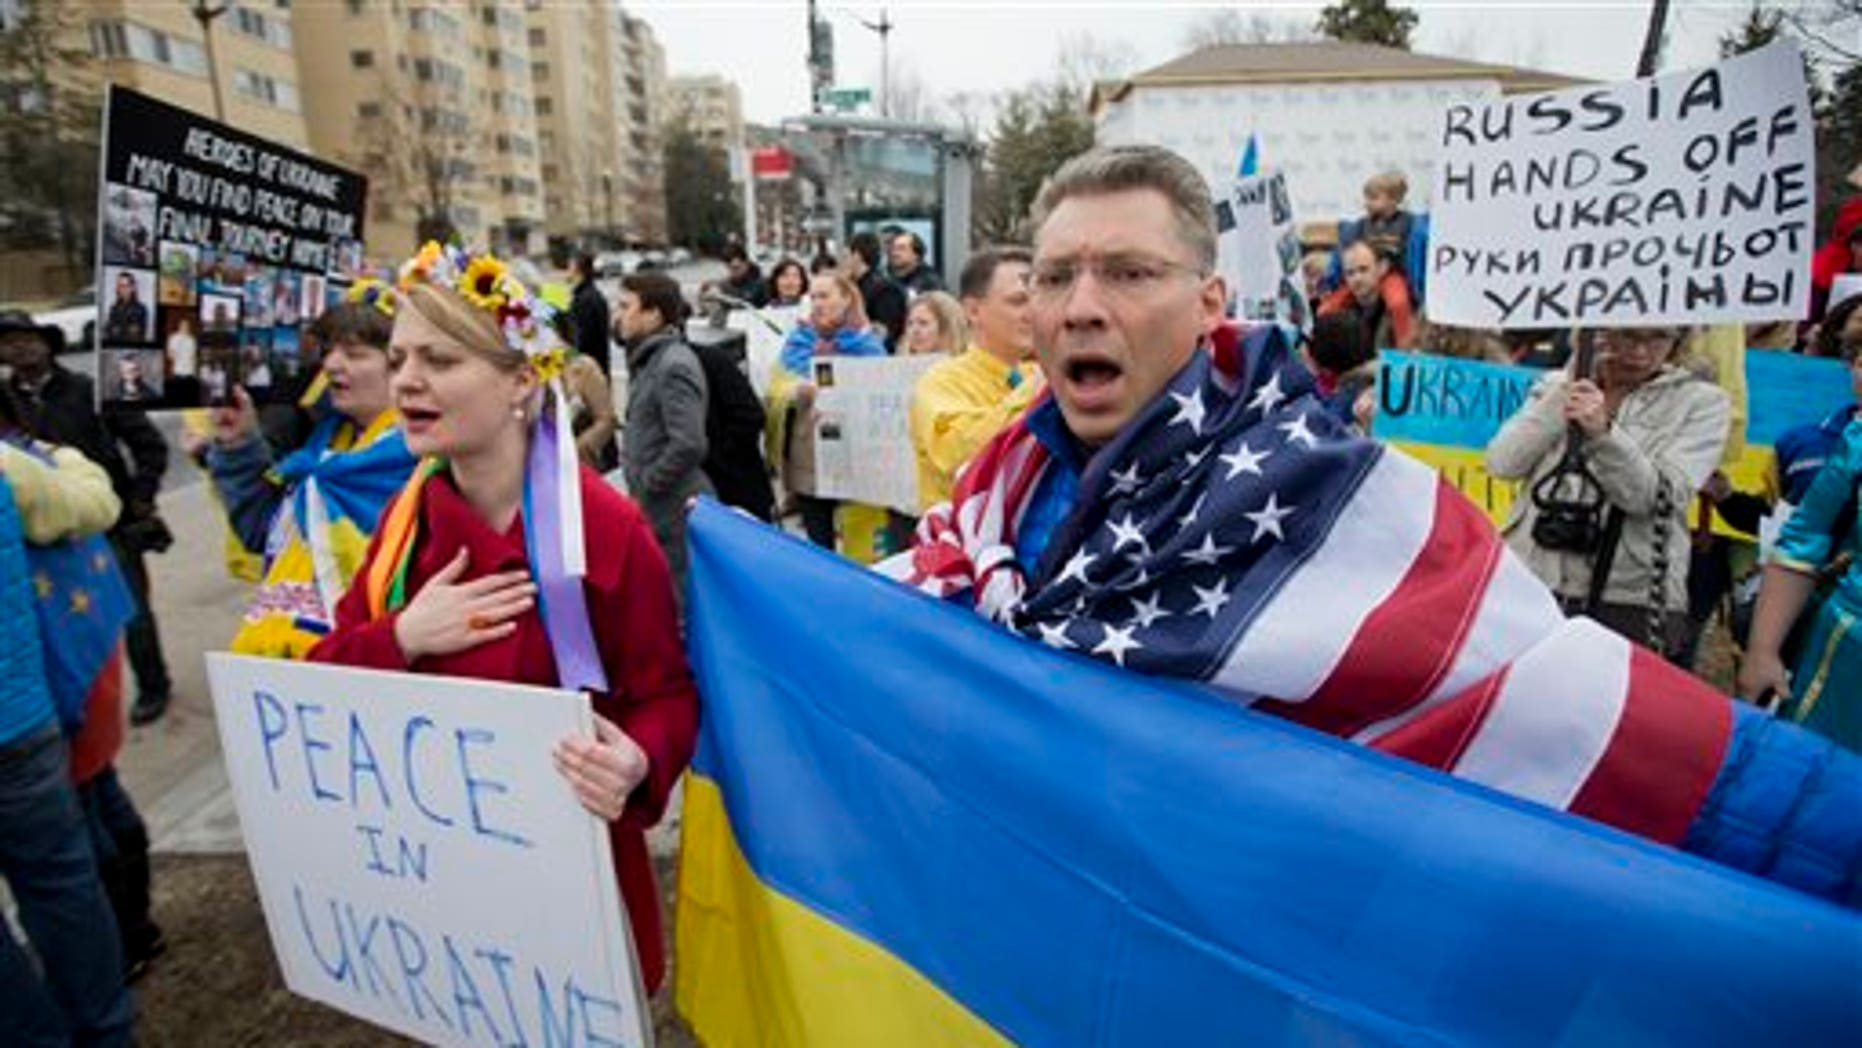 "Moscow-born Dmitry Savransky, right, who holds dual citizenship, American and Russian, joins his Ukrainian wife Natalya Seay, left, during a protest rally in front of the Russian embassy, in Washington, Sunday, March 2, 2014. Igniting a tense standoff, Russian forces surrounded a Ukrainian army base Sunday just as the country began mobilizing in response to the surprise Russian takeover of Crimea. Outrage over Russia's tactics mounted in world capitals, with U.S. Secretary of State John Kerry calling on President Vladimir Putin to pull back from ""an incredible act of aggression."" (AP Photo/Manuel Balce Ceneta)"